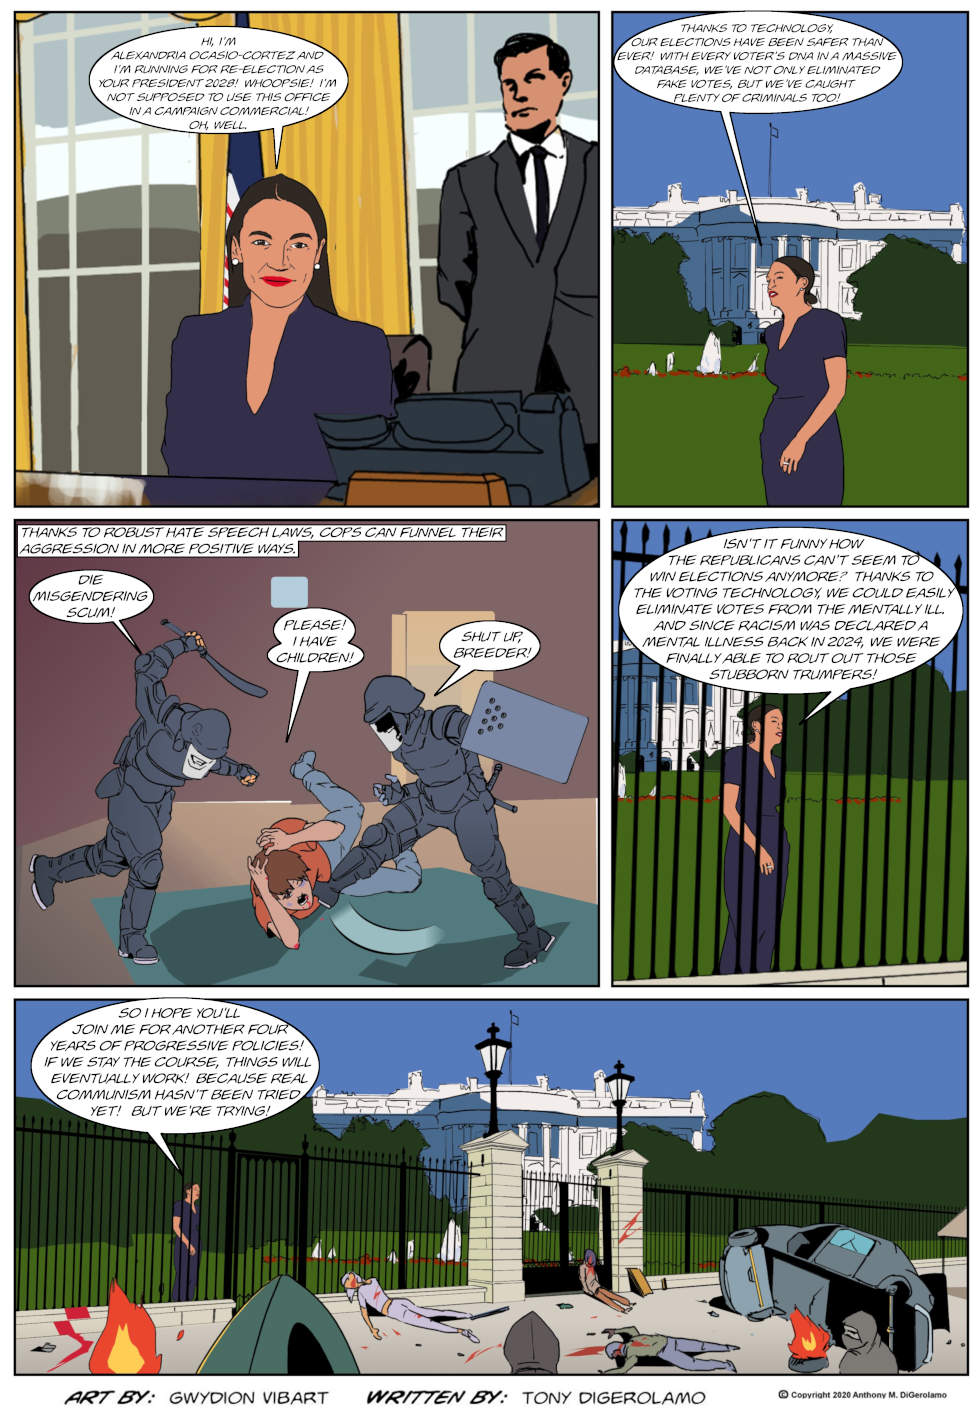 The Antiwar Comic:  It Never Works